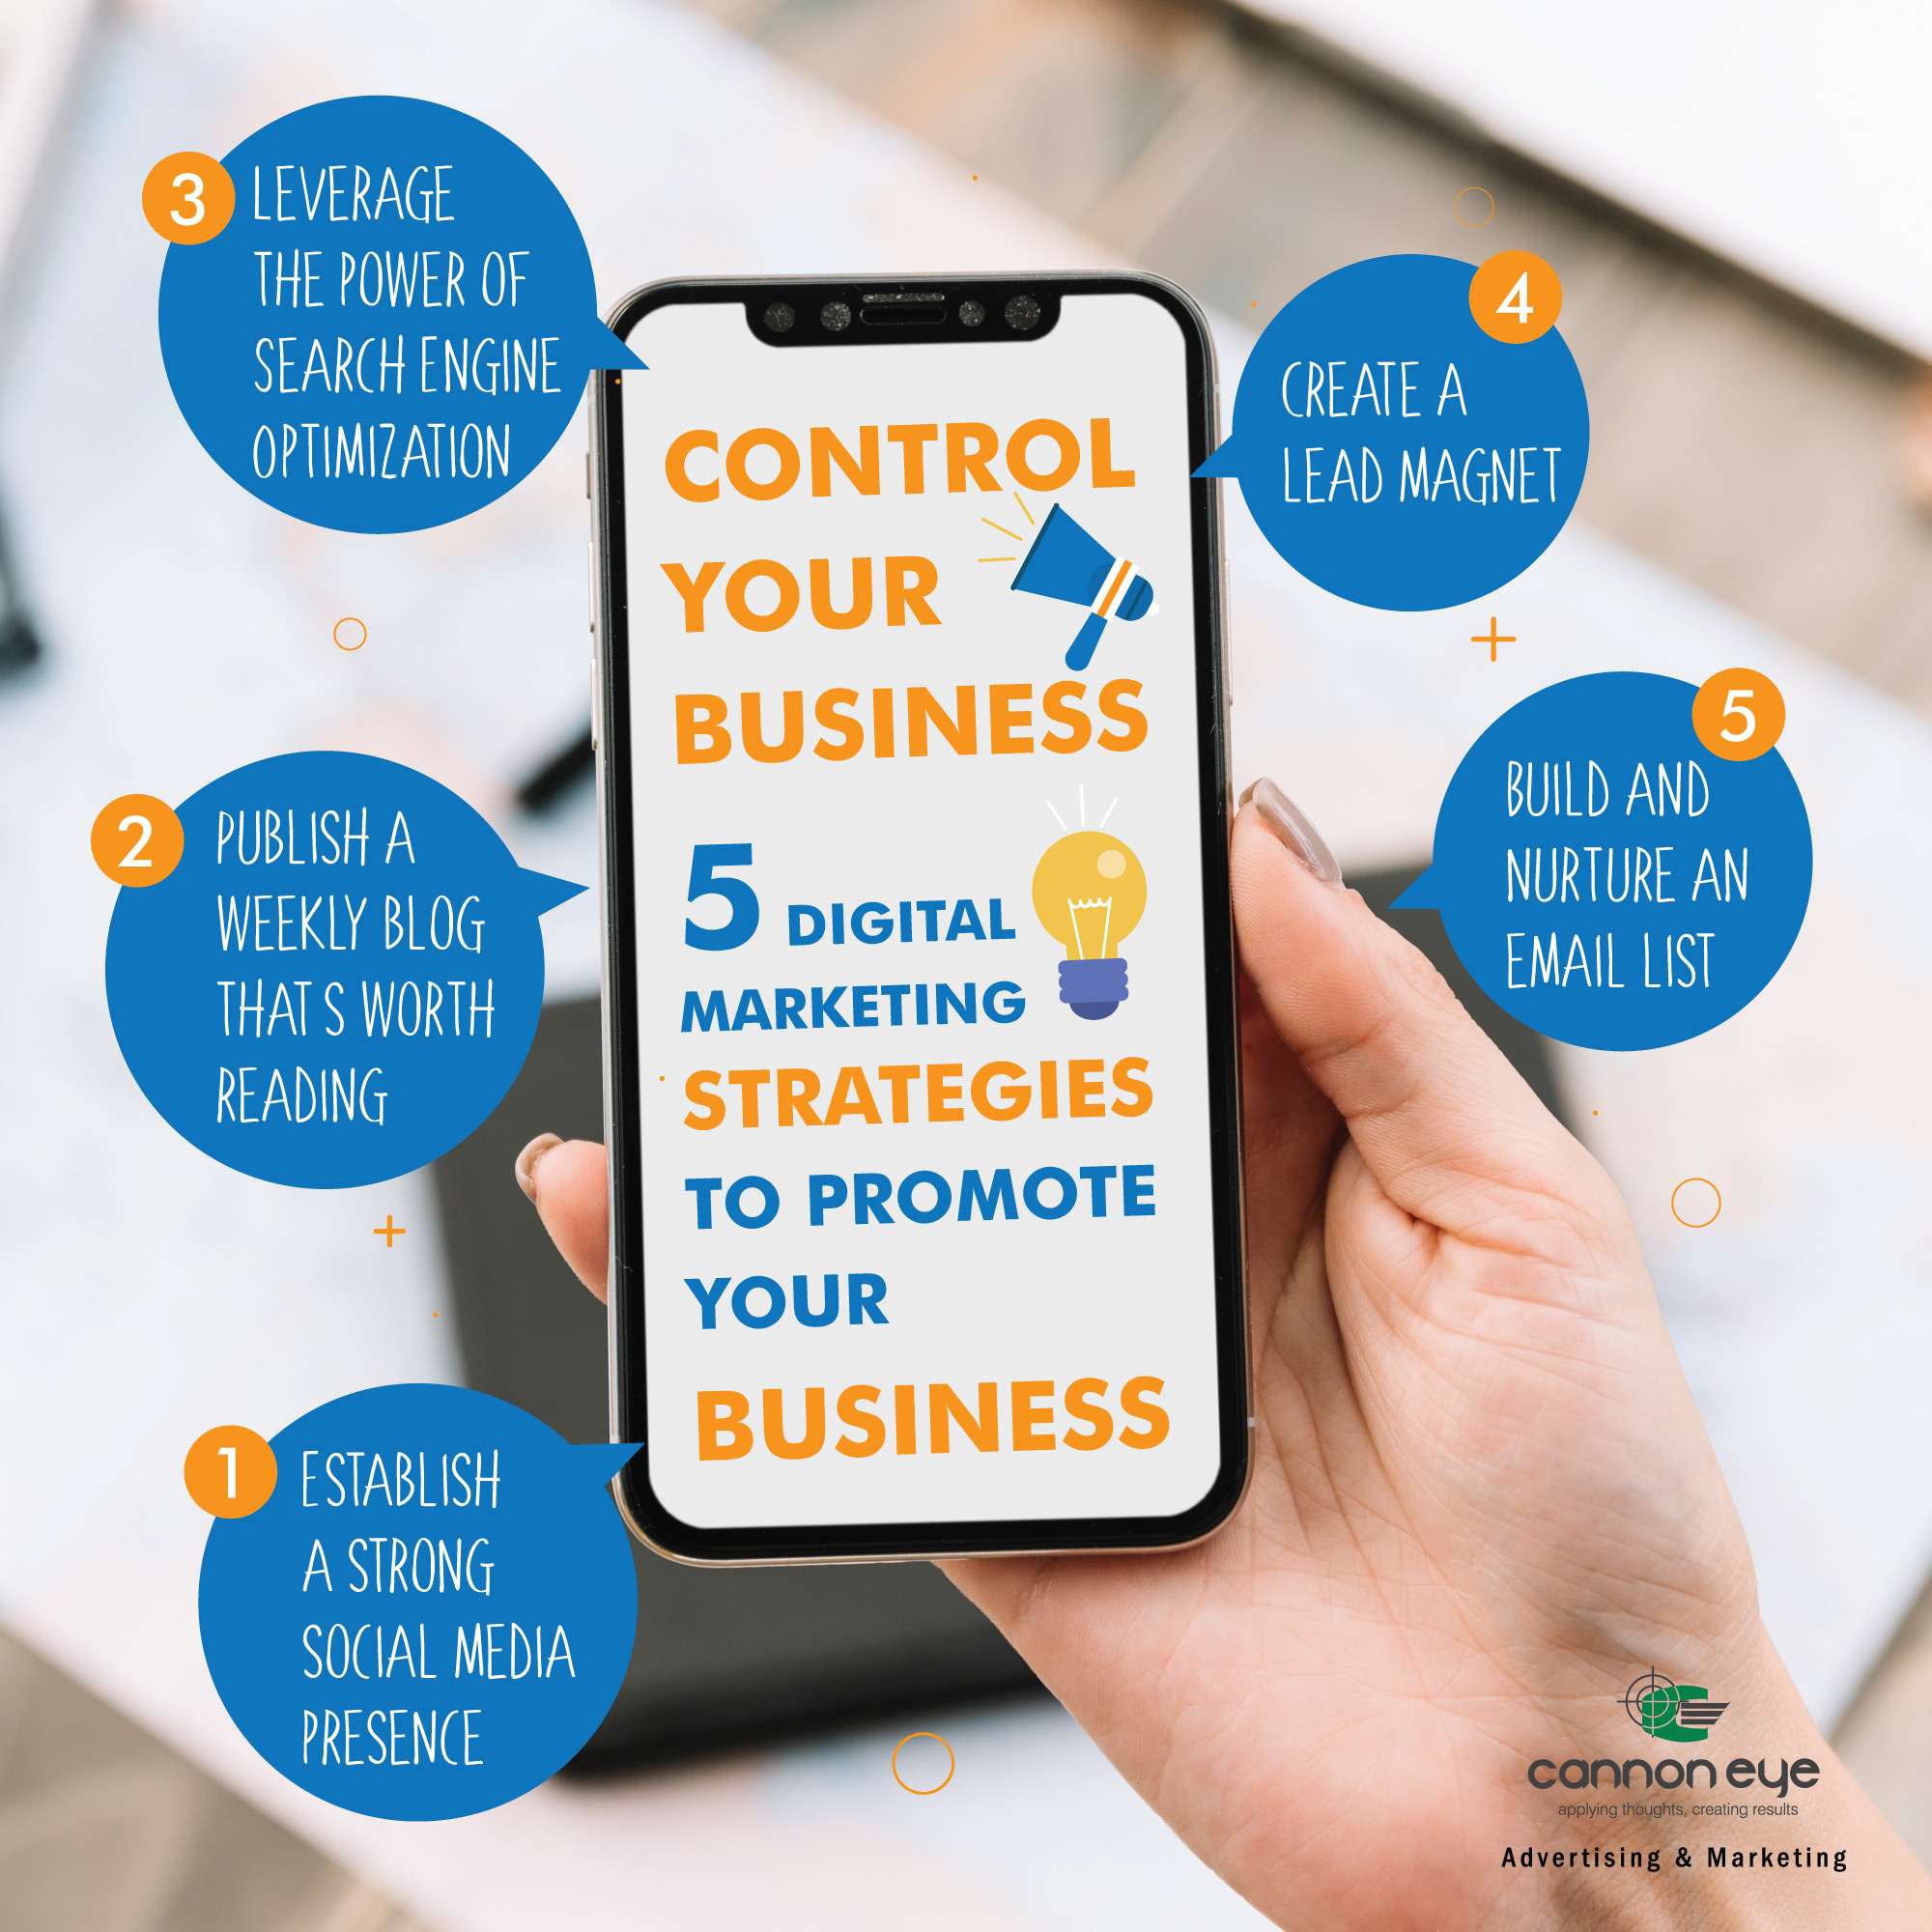 5 Digital Marketing Strategies to Promote Your Business IMAGE